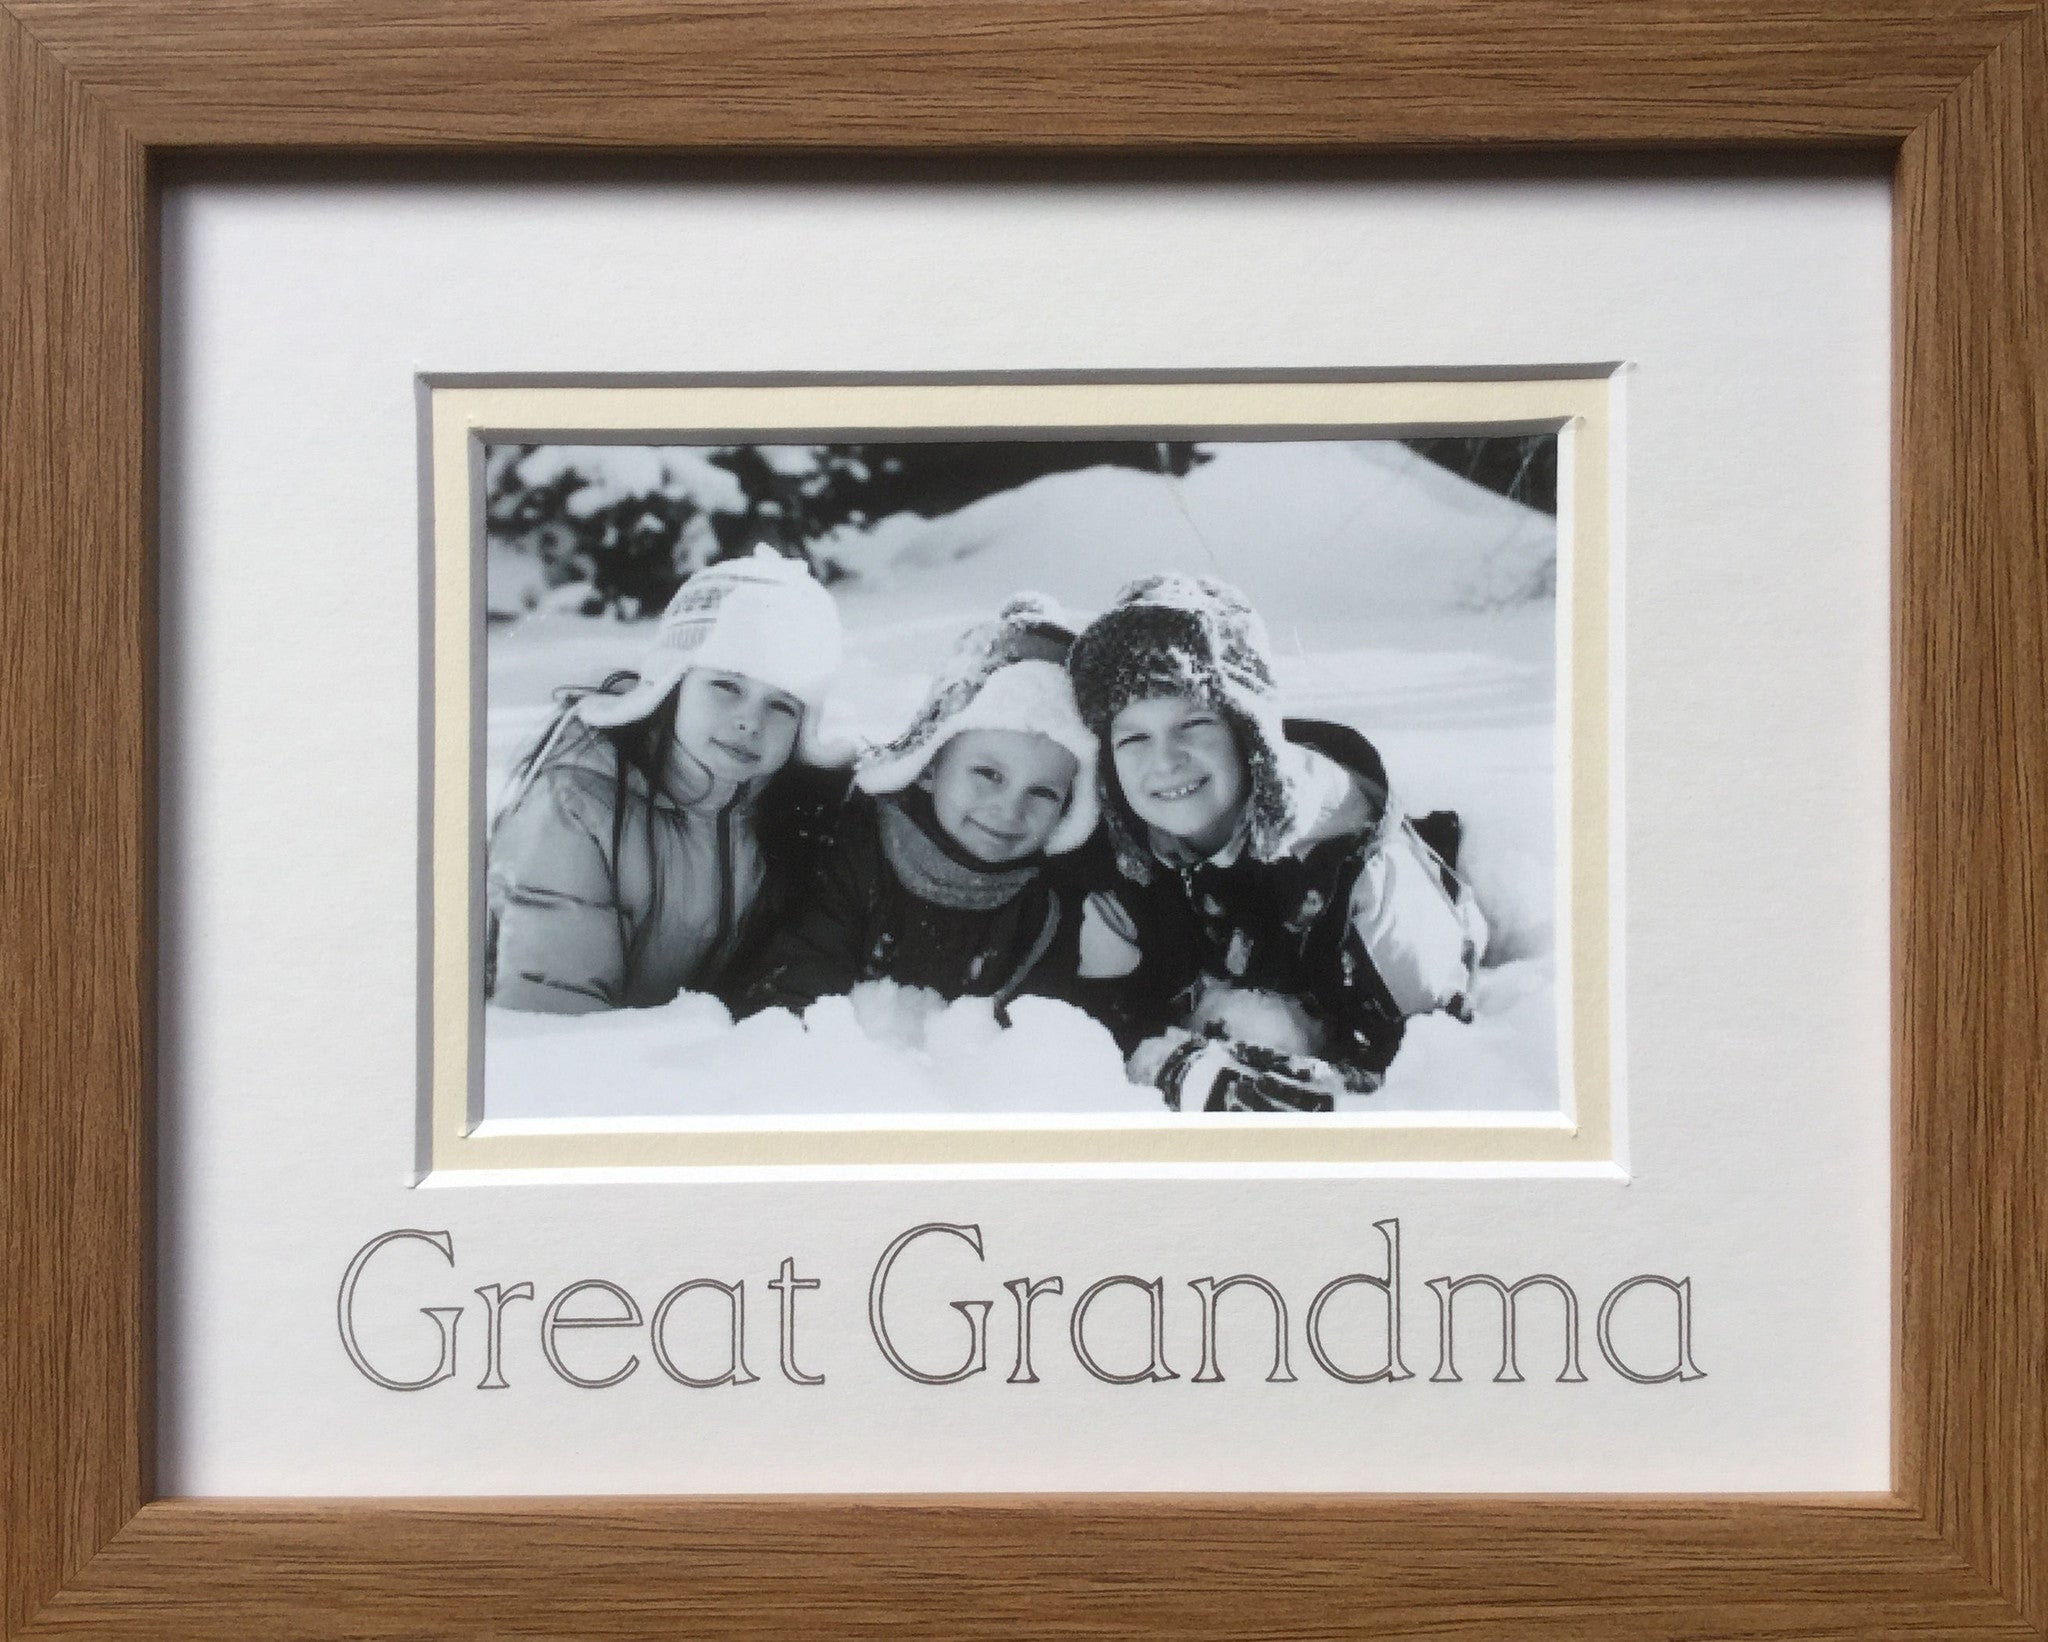 Great Grandma Photo Frame Oak - Azana Photo Frames